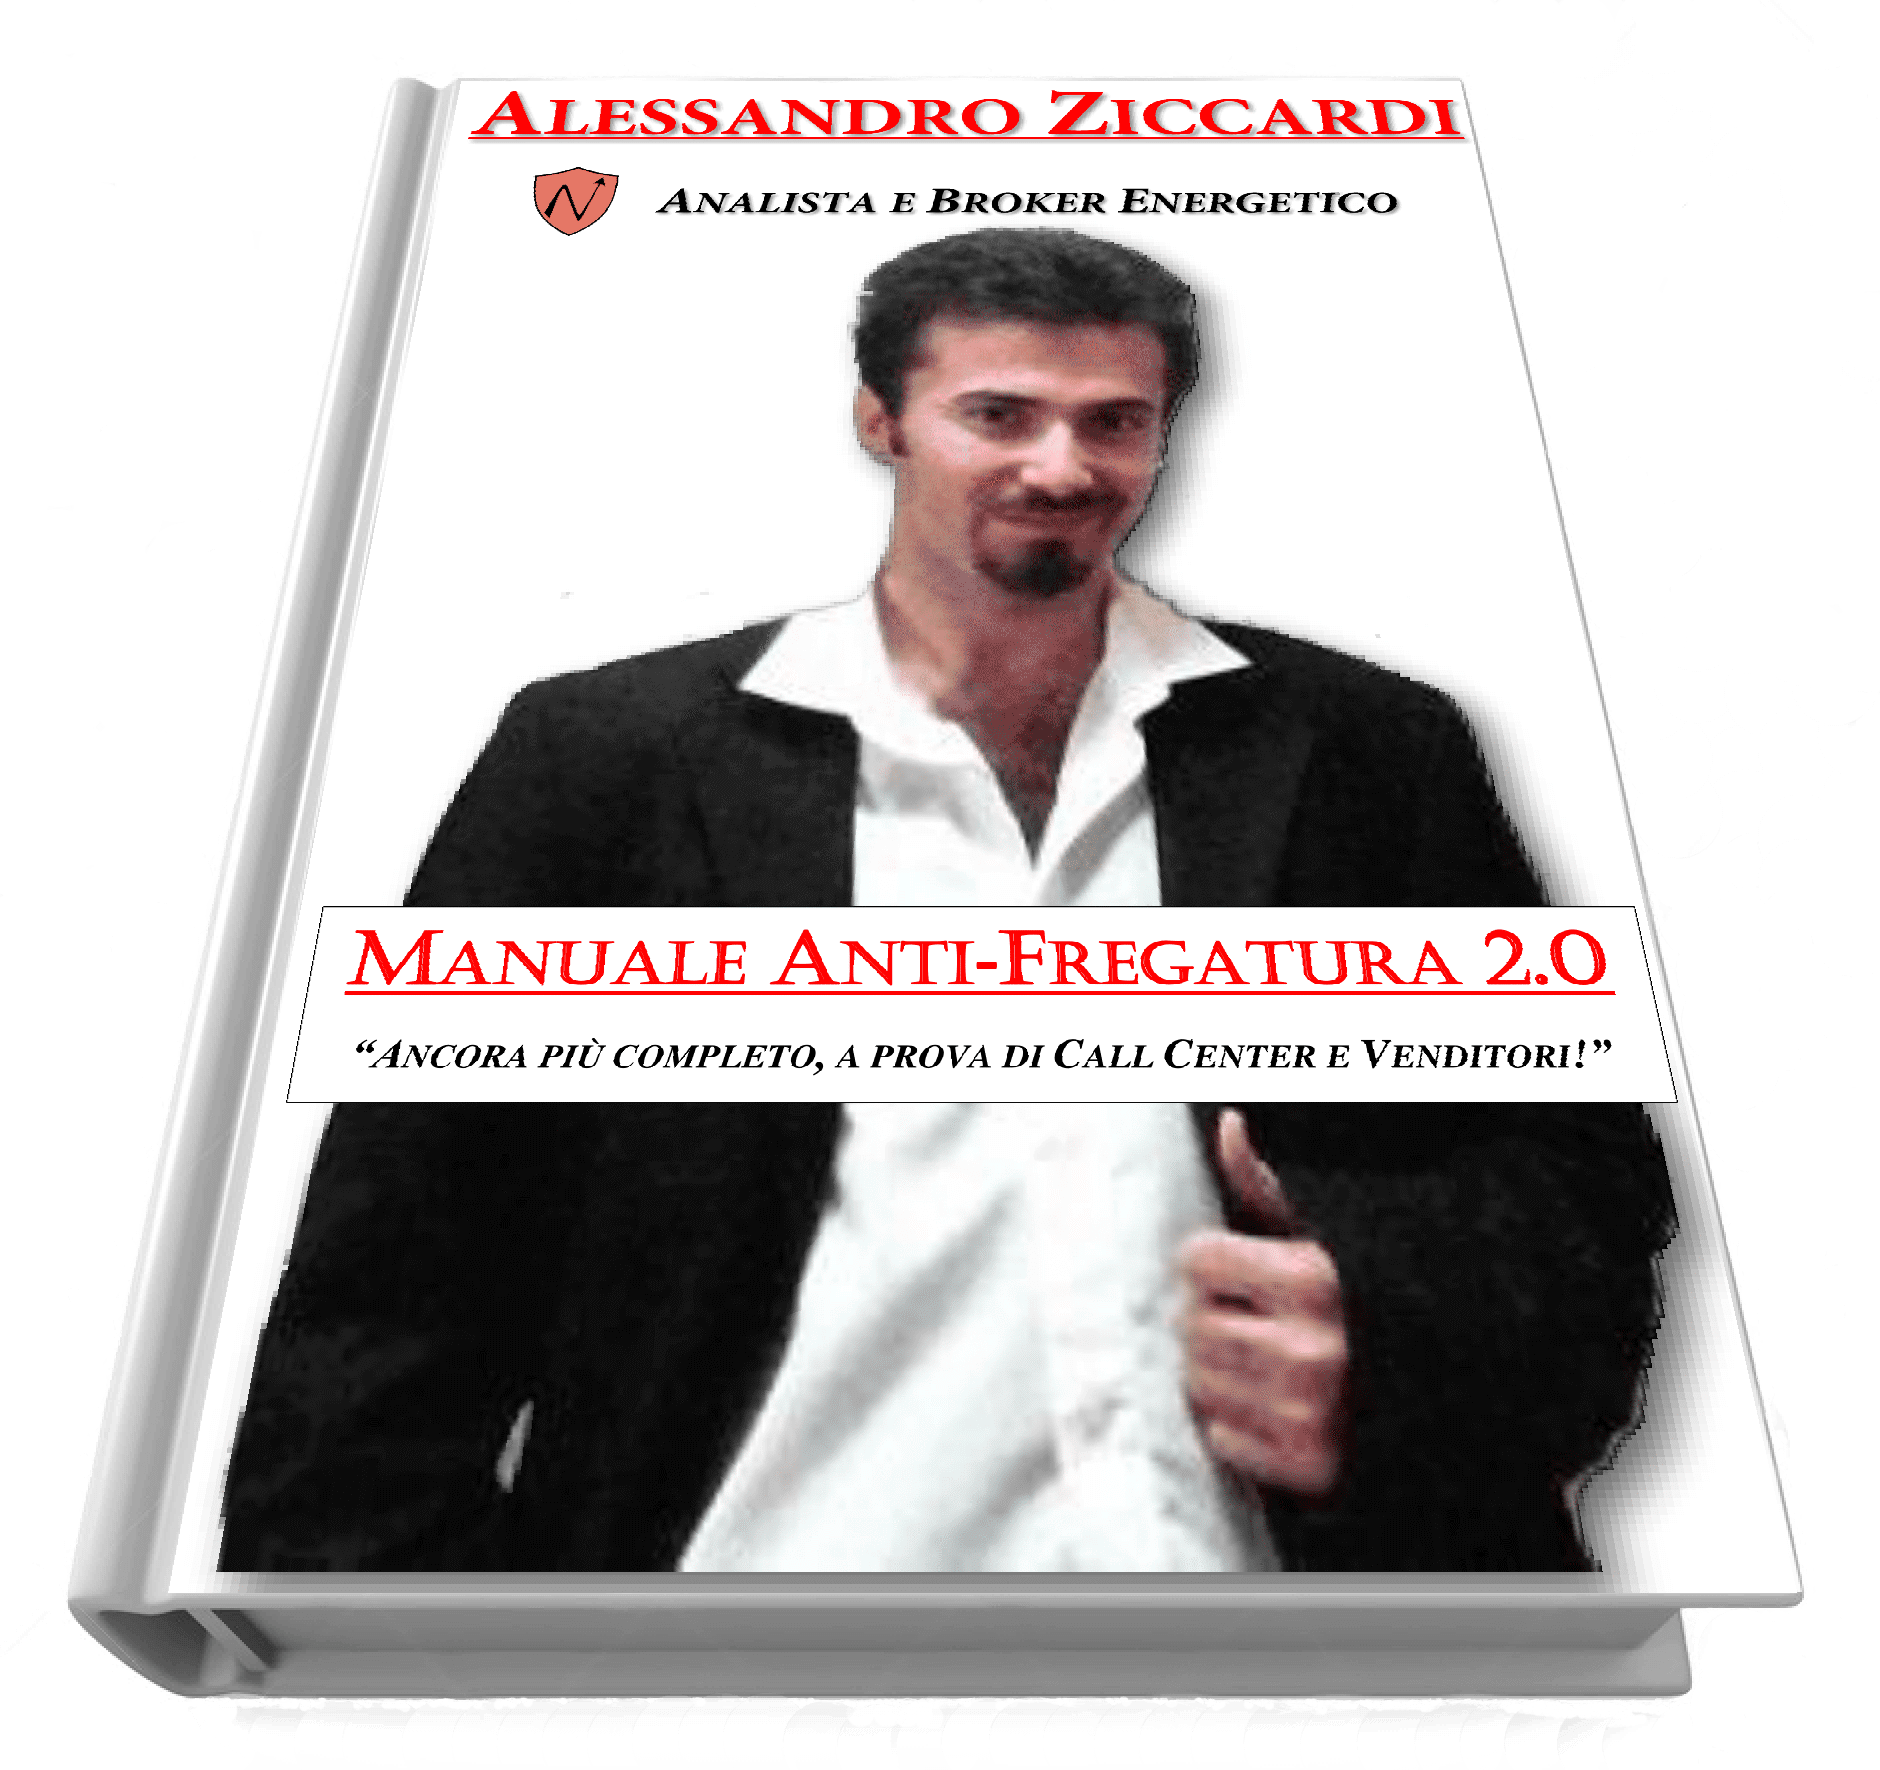 Manuale Anti-Fregatura 2.0